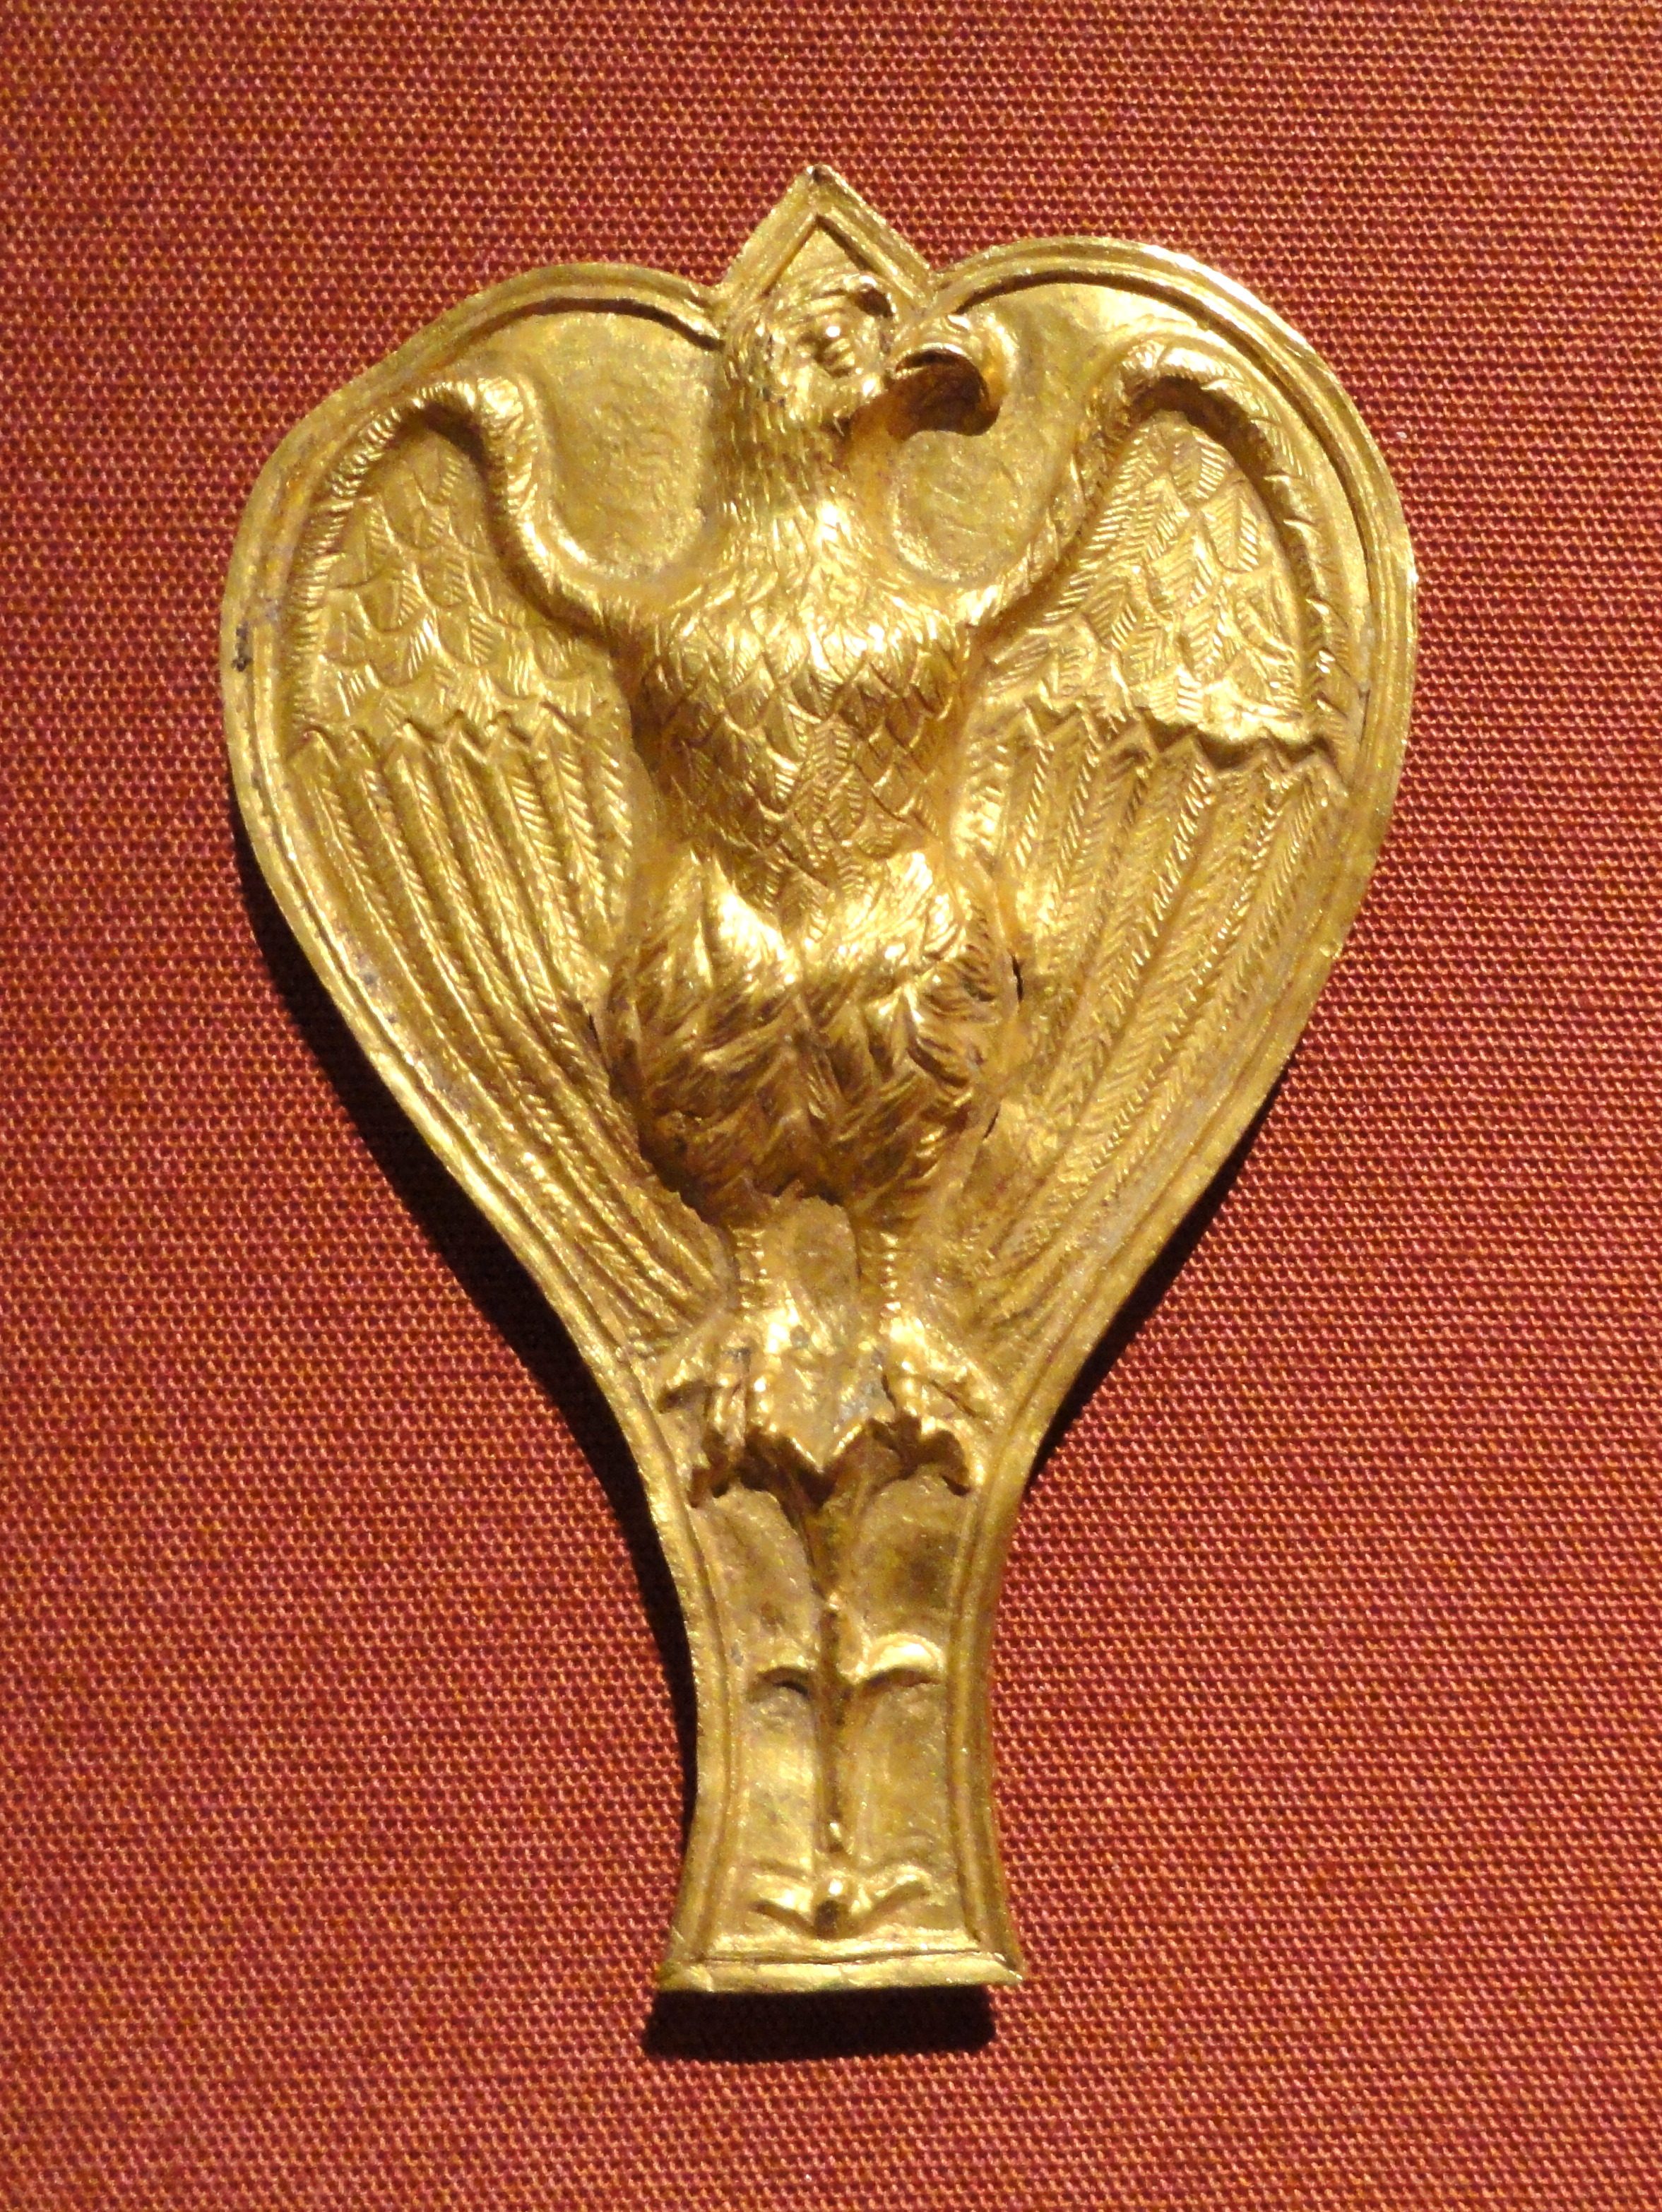 Part 2 tricks of the trade from ancient symbols to modern the roman aquila or eagle was a symbol of romes power and authority buycottarizona Choice Image